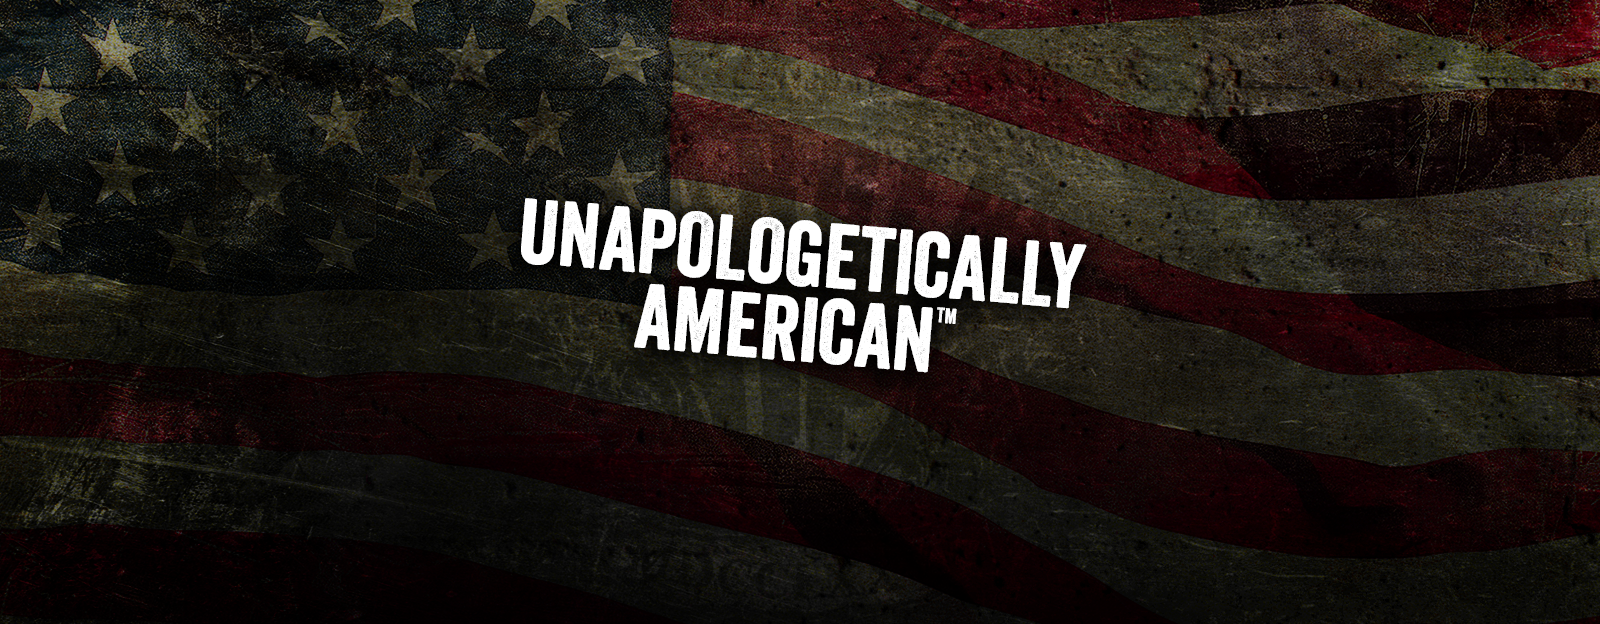 Unapologetically American T-Shirts